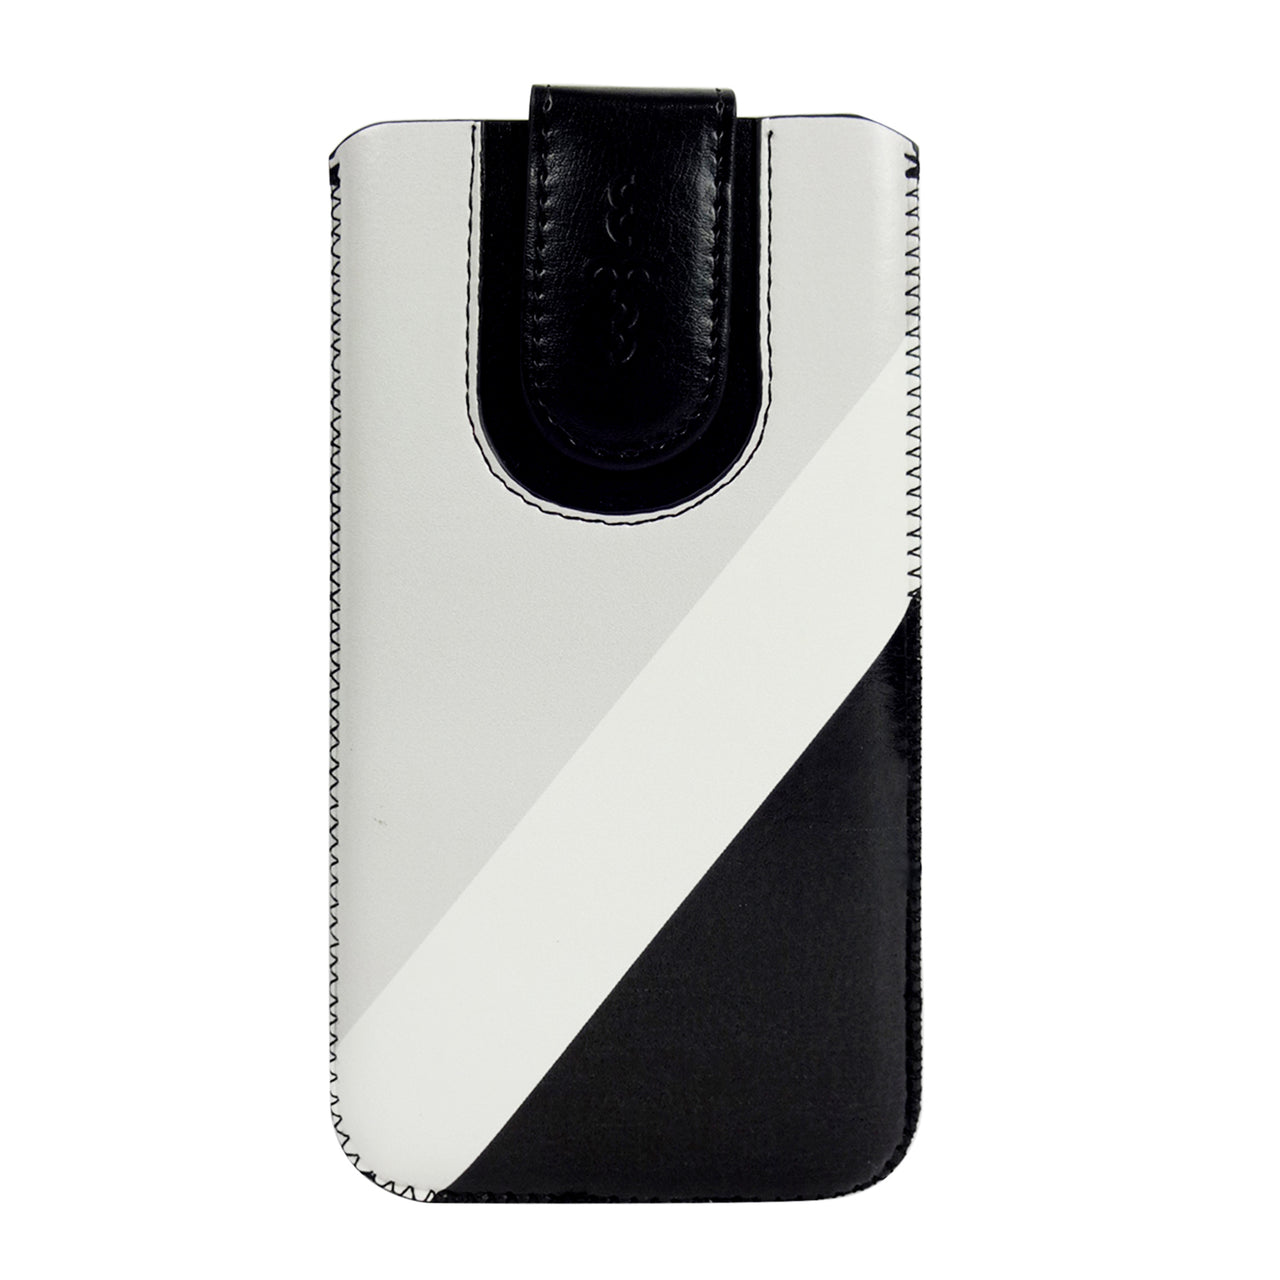 Universal Phone Pouch - Black Grey